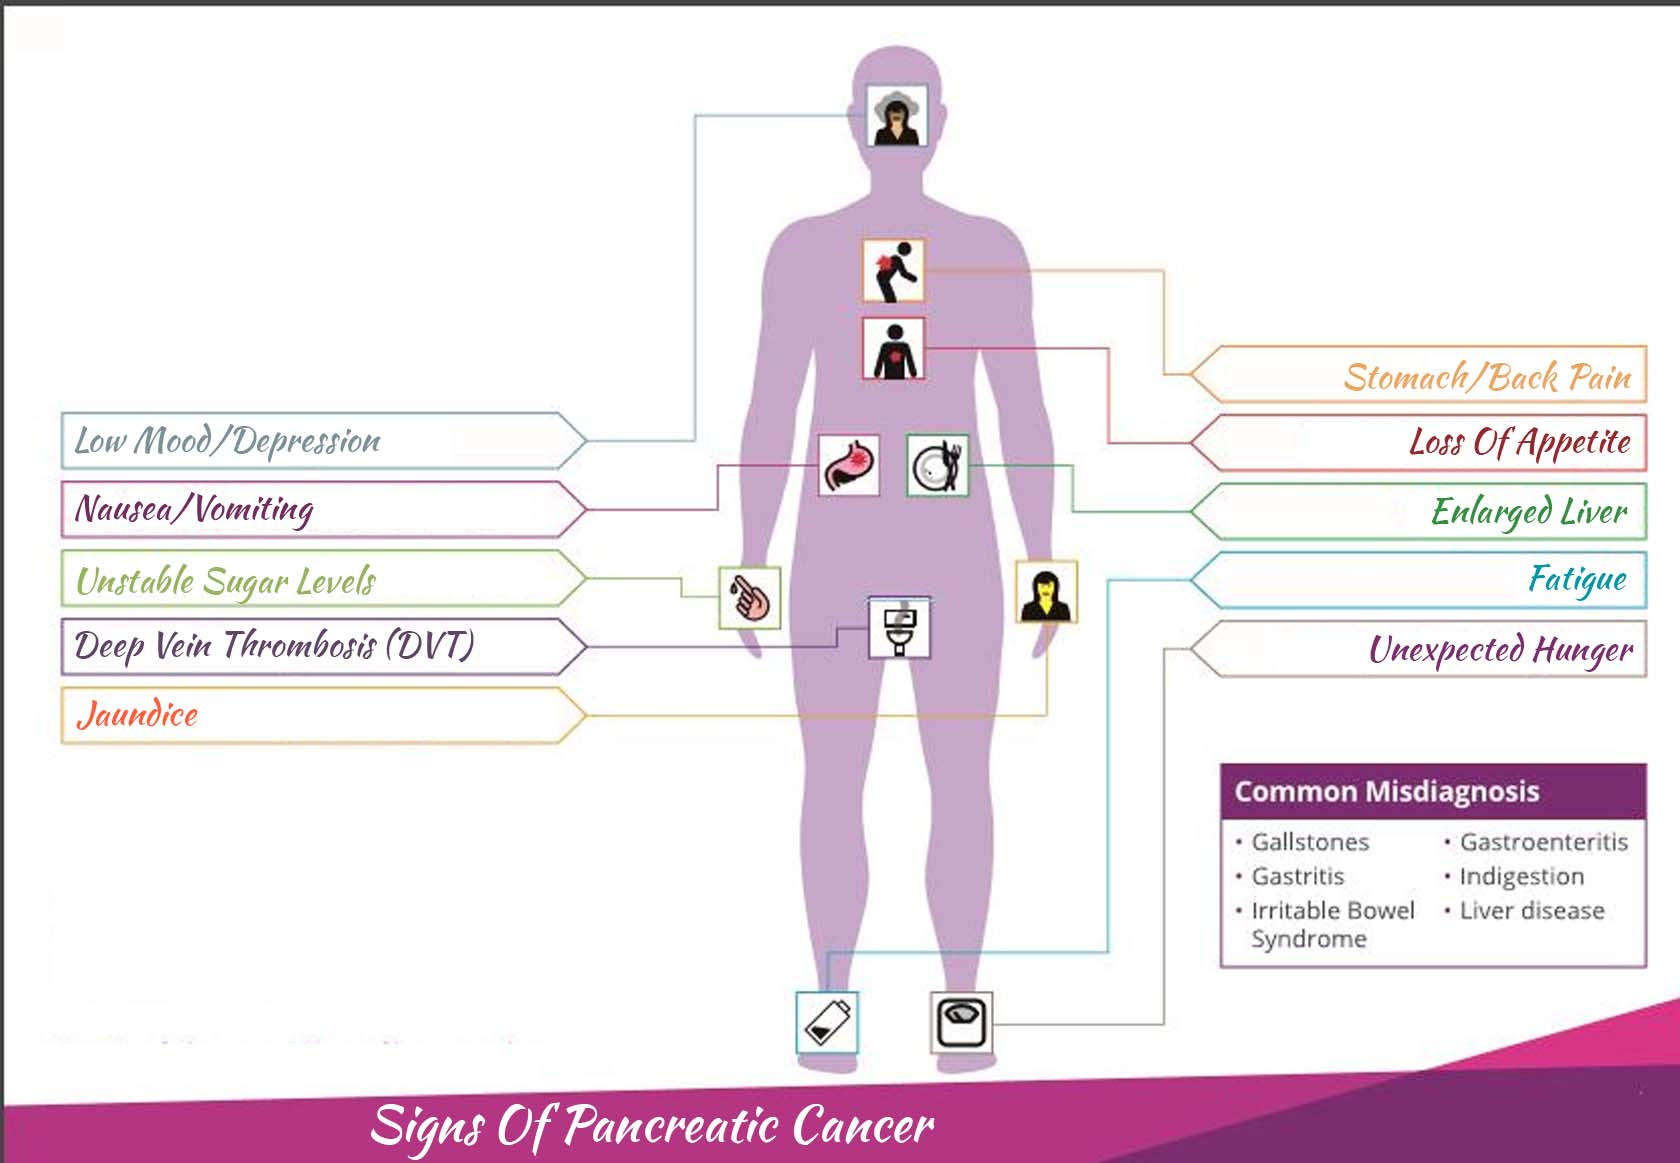 Signs Of Pancreatic Cancer